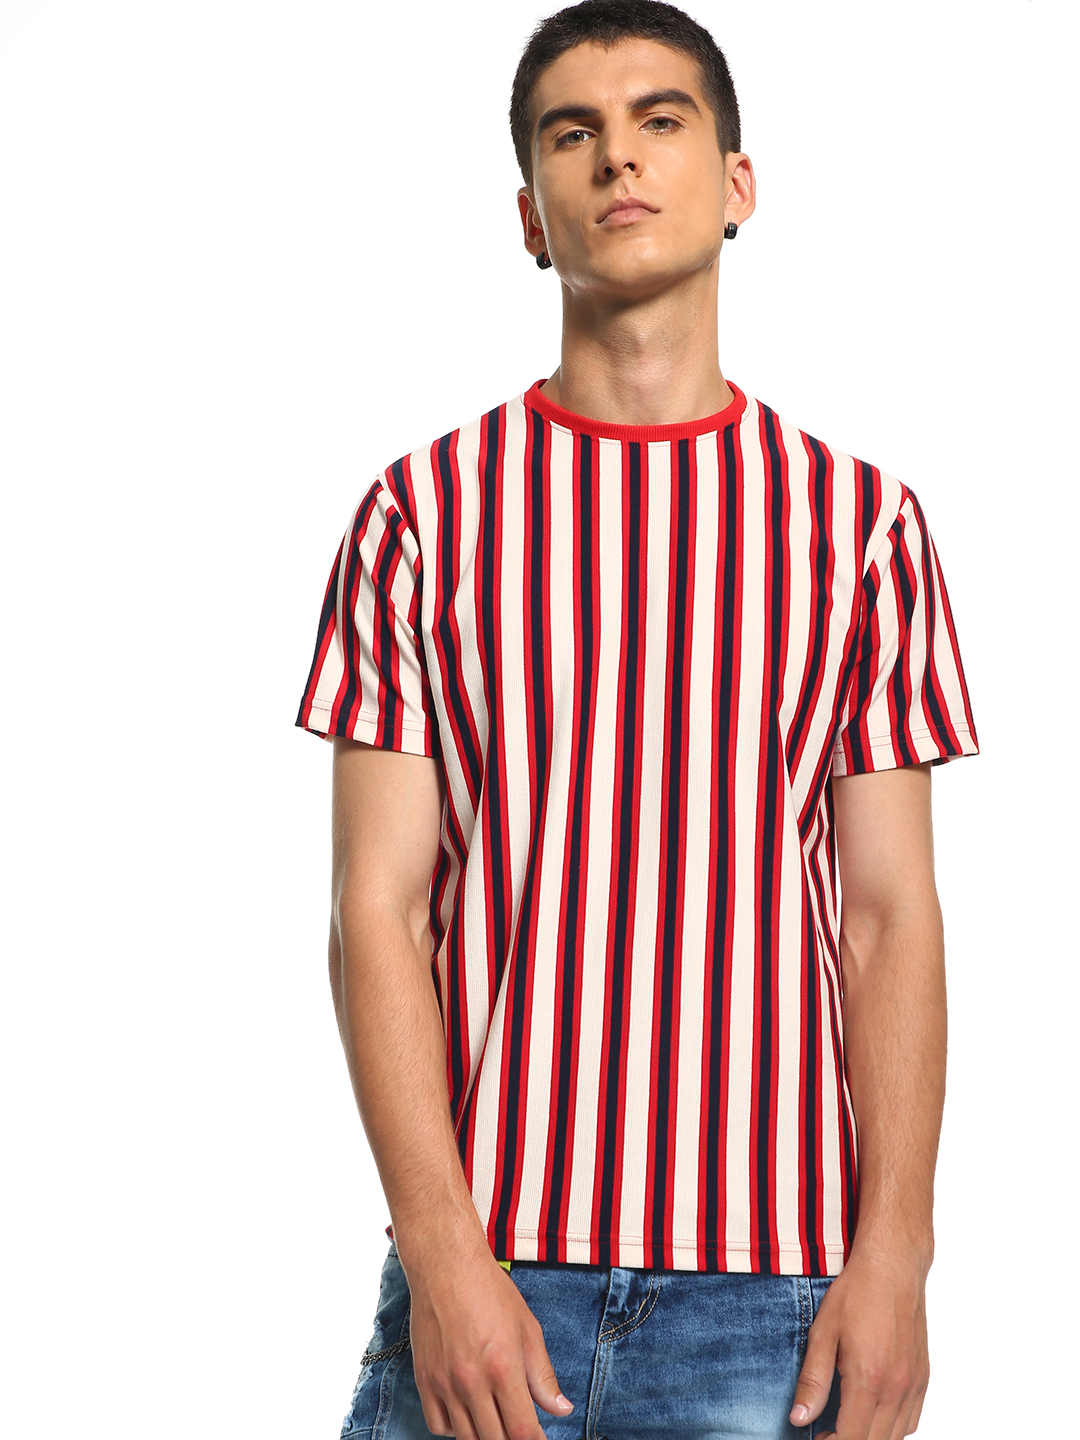 Deezeno Burgundy Vertical Stripe Print T-Shirt 1